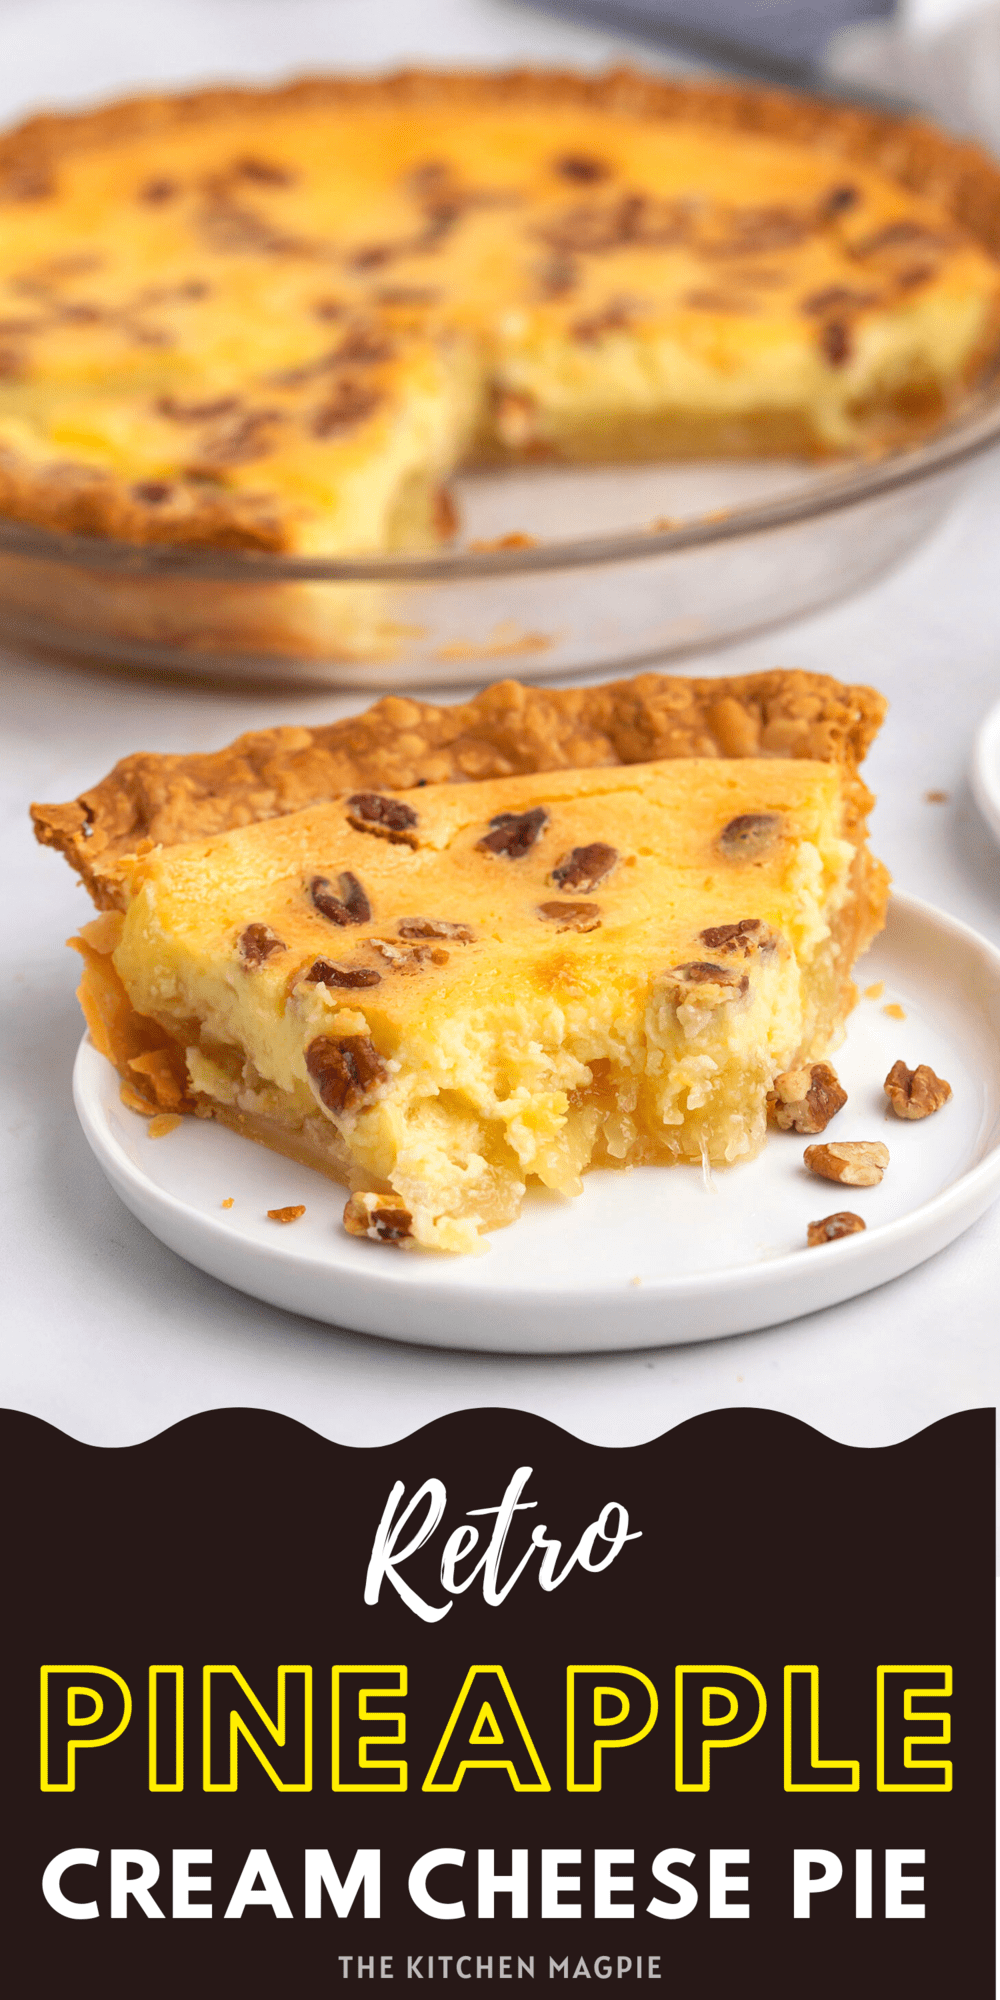 Delectable pineapple pie made with a sweet cream cheese layer, then baked in a pie shell and topped with crispy pecans.